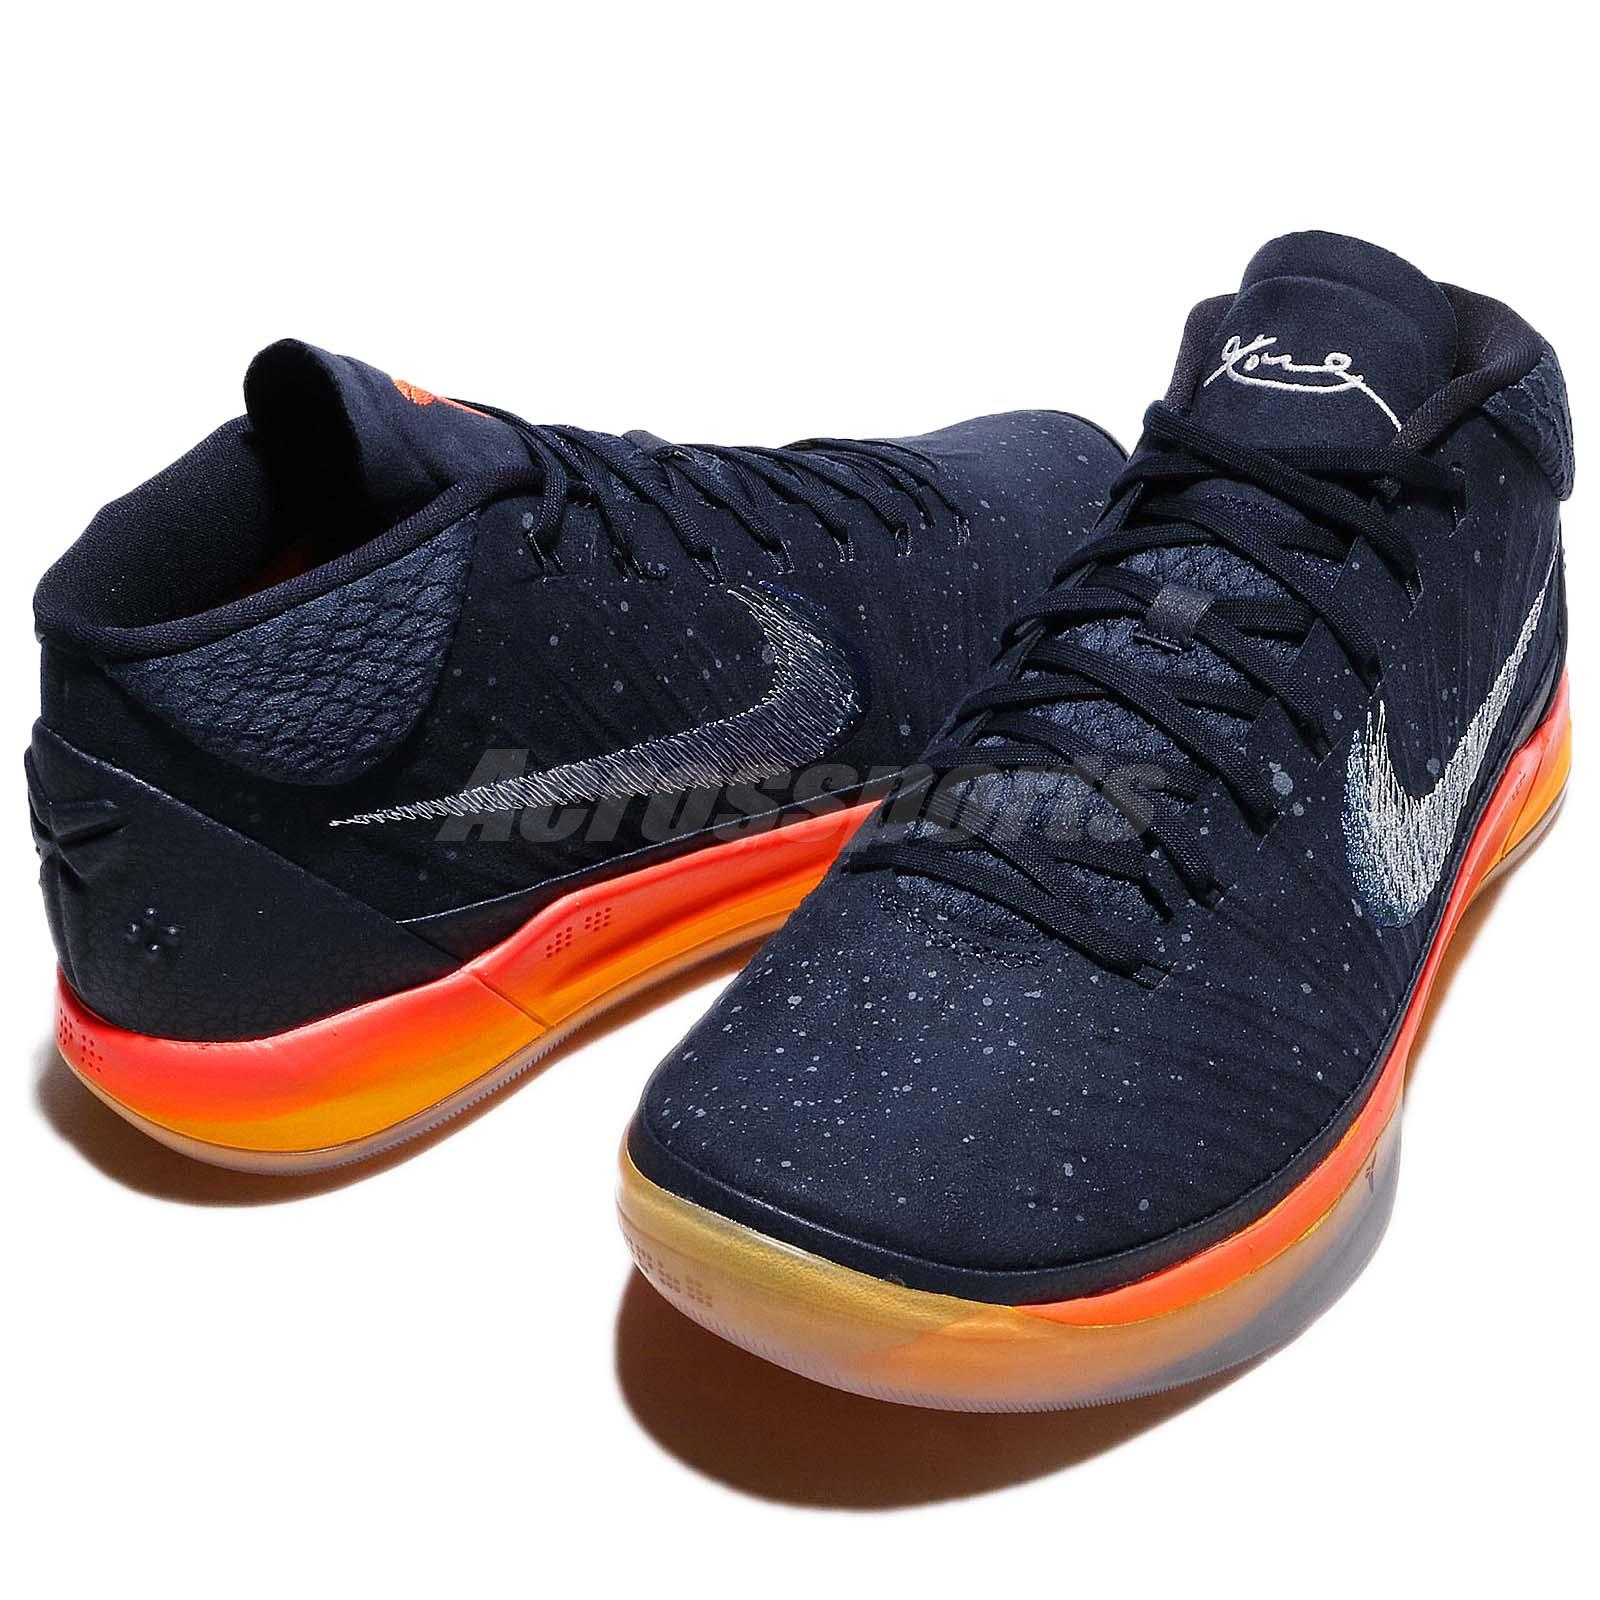 pretty nice 7ffda 21a18 ... spain where can i buy nike kobe ad ep a.d. mid rise mamba bryant  obsidian orange